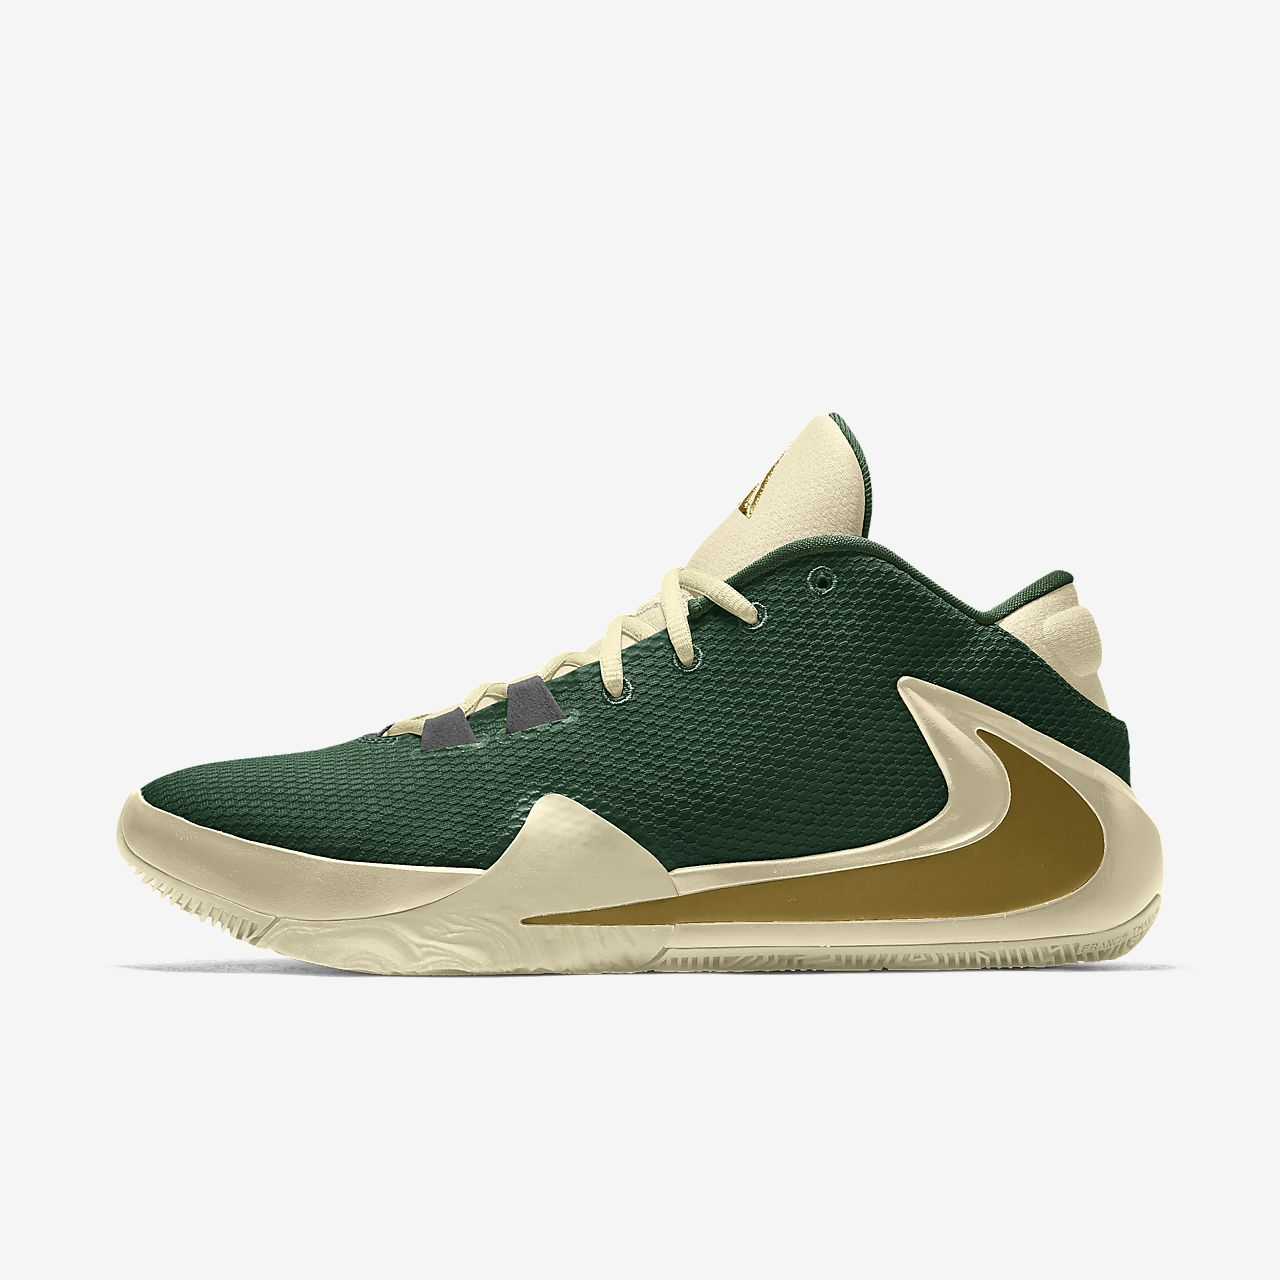 Nike Zoom Freak 1 By You personalisierbarer Basketballschuh